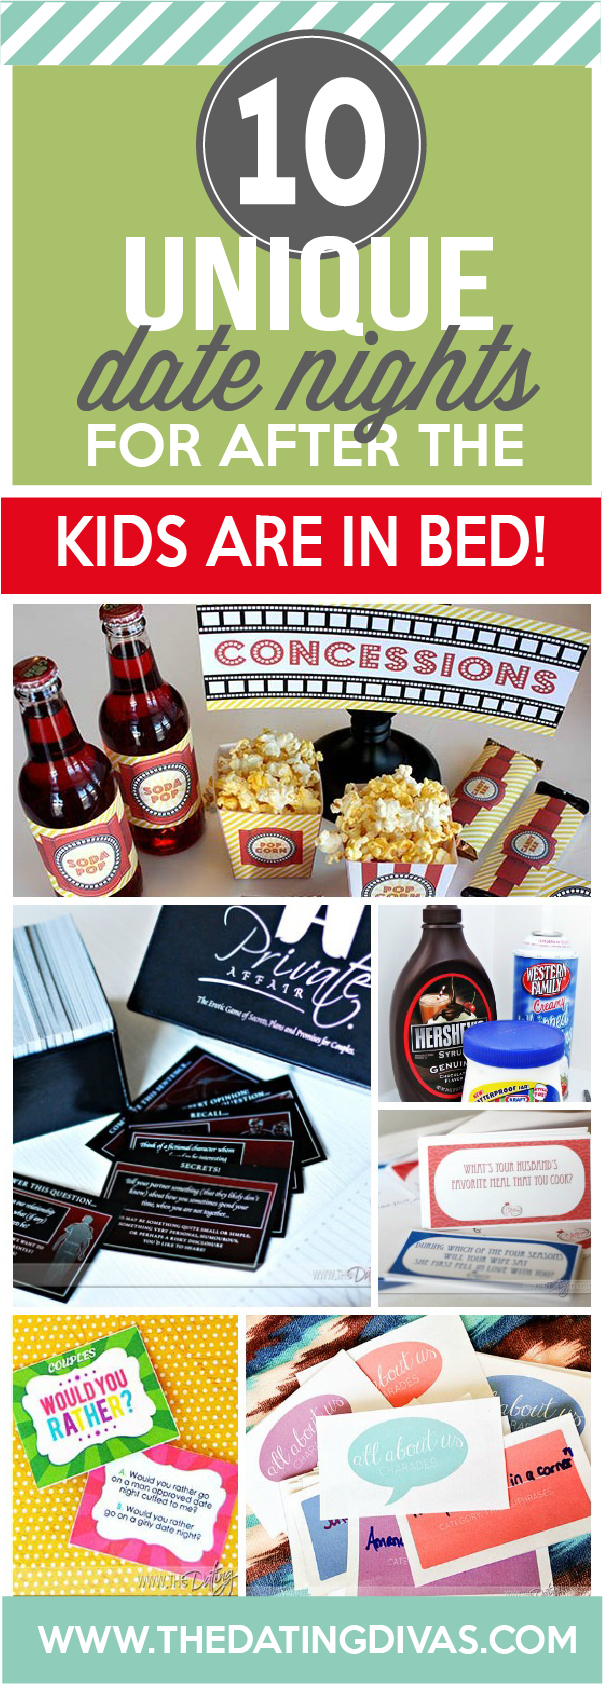 Date night ideas for when you have kids